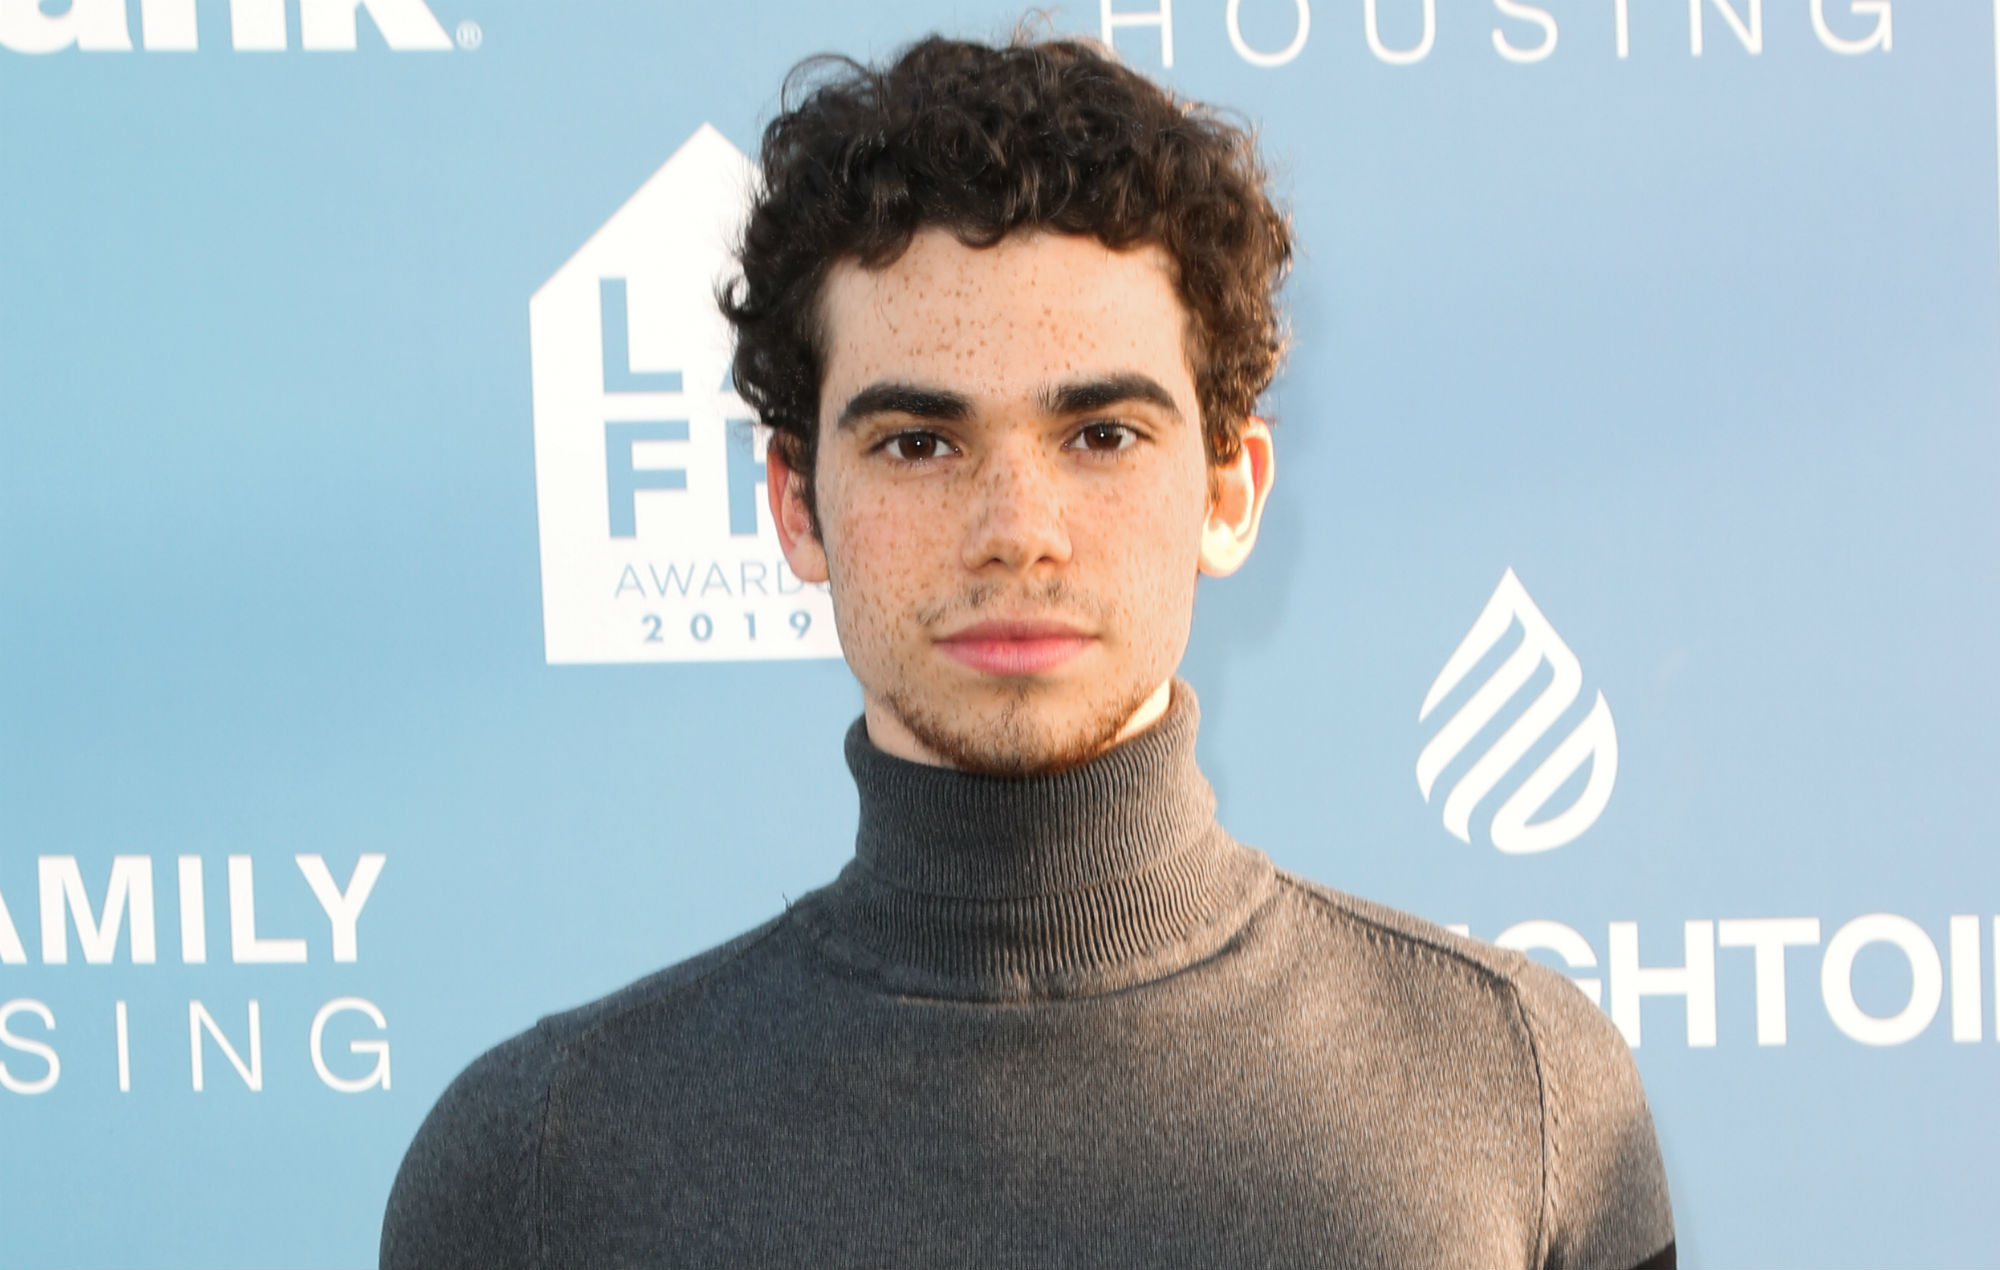 Tributes Paid To Disney Star Cameron Boyce Who Has Died Aged 20